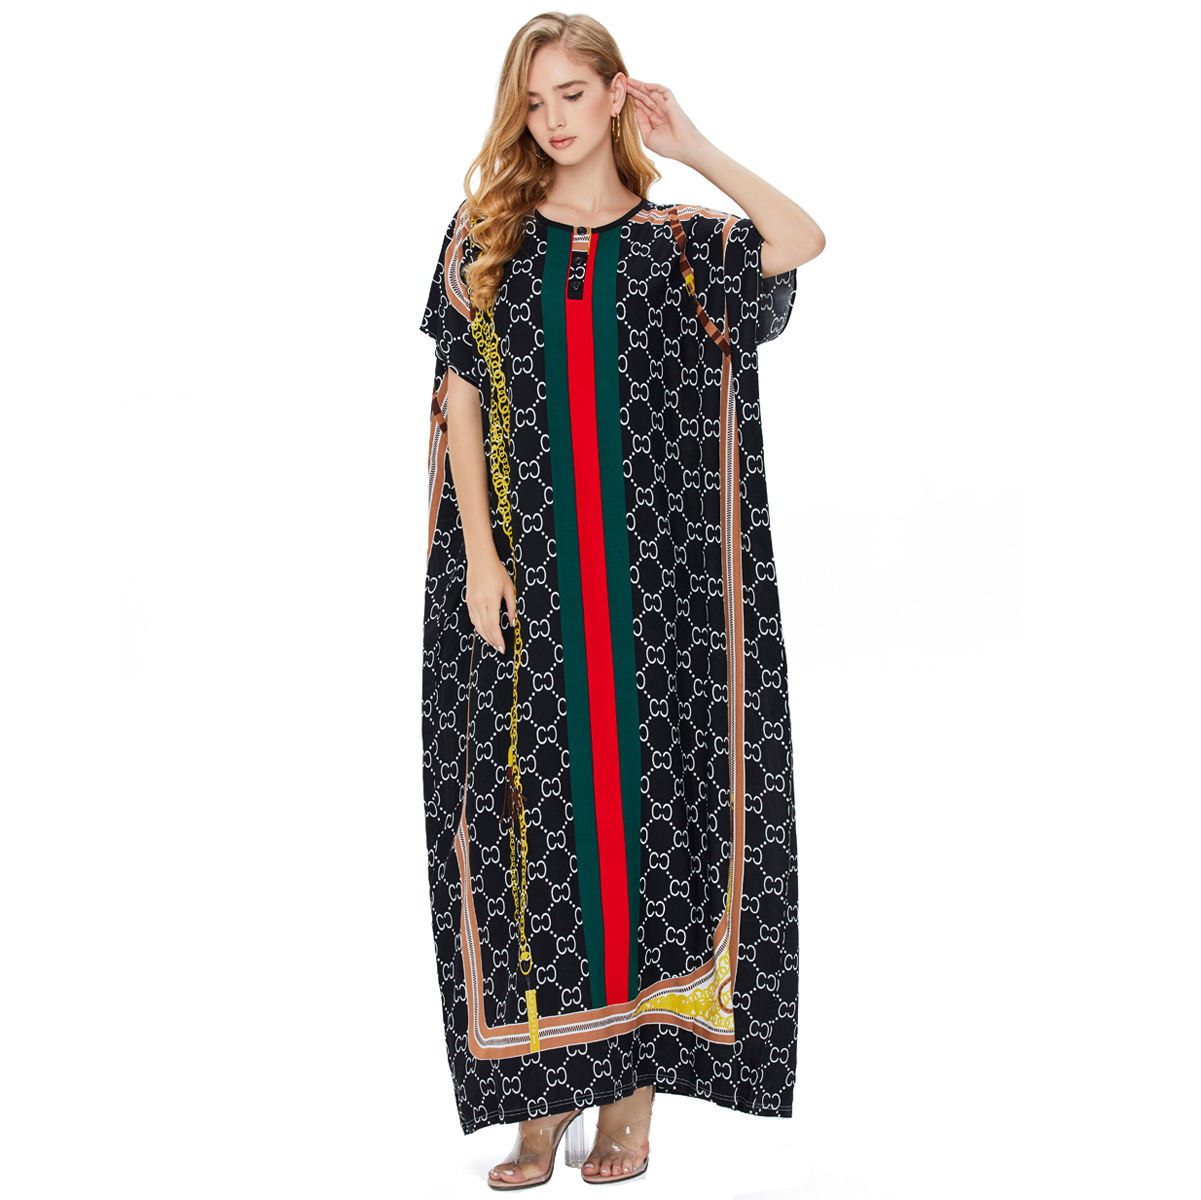 New Arrivals Summer beautiful long skirt for women kaftan clothing Islamic dress